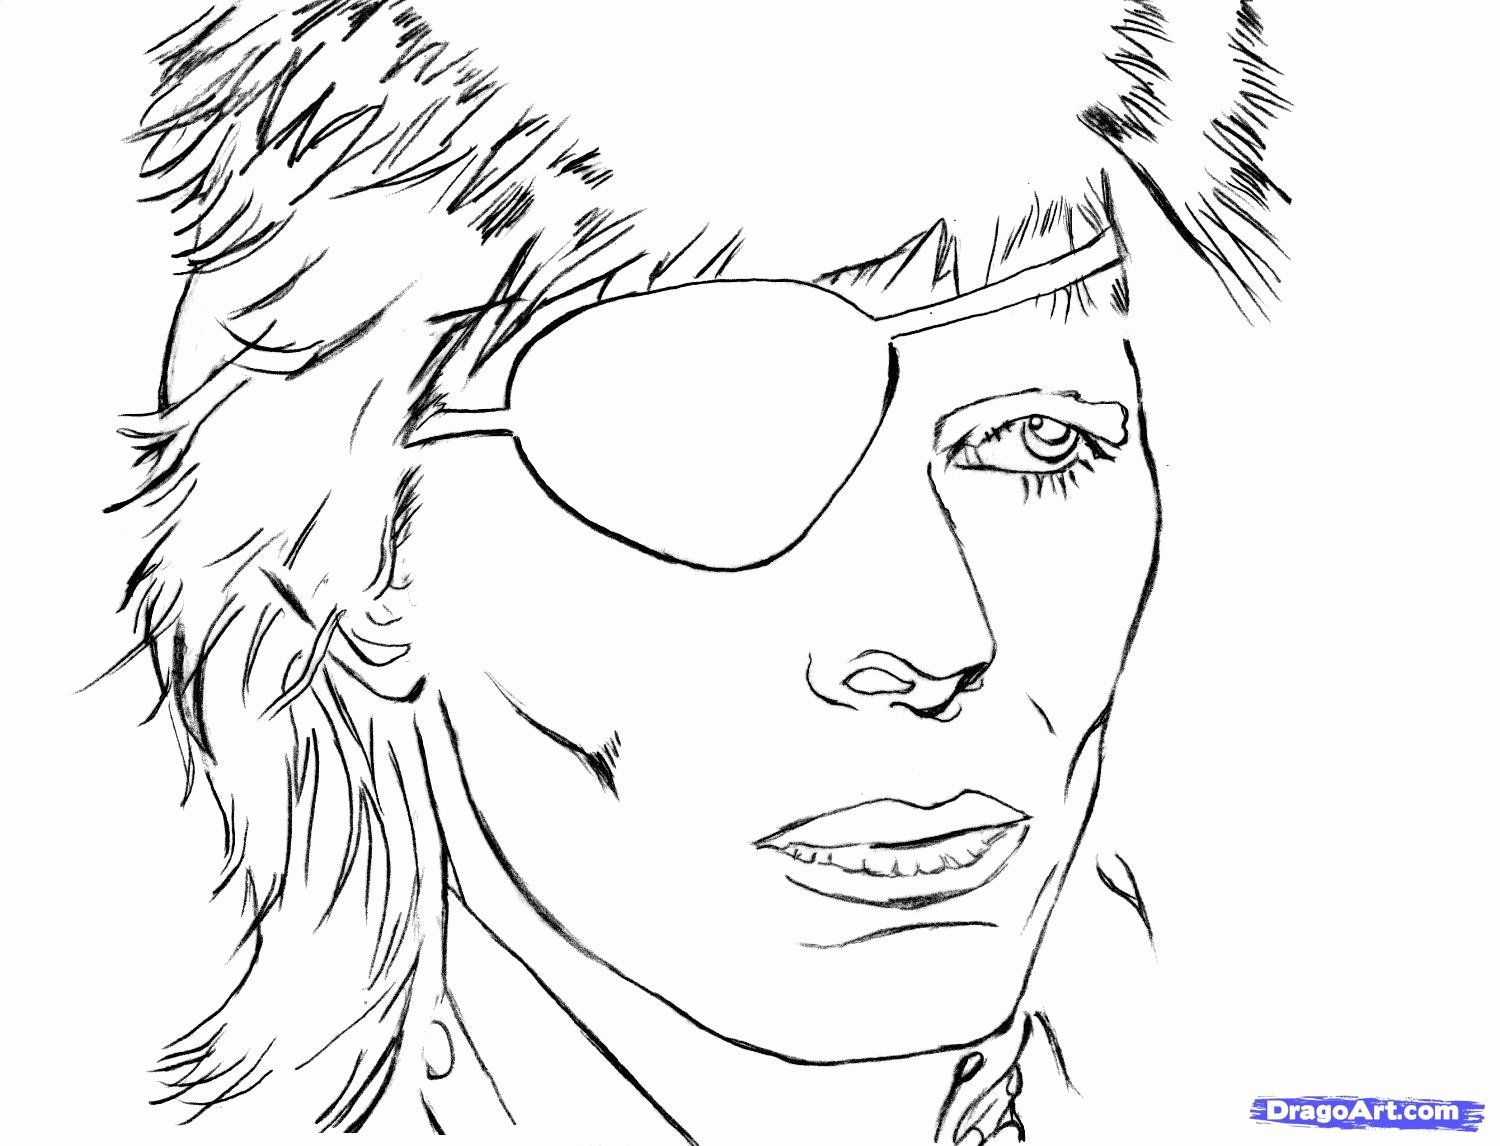 The David Bowie Coloring Book Photo Coloring Books Enchanted Forest Coloring Book Forest Coloring Book